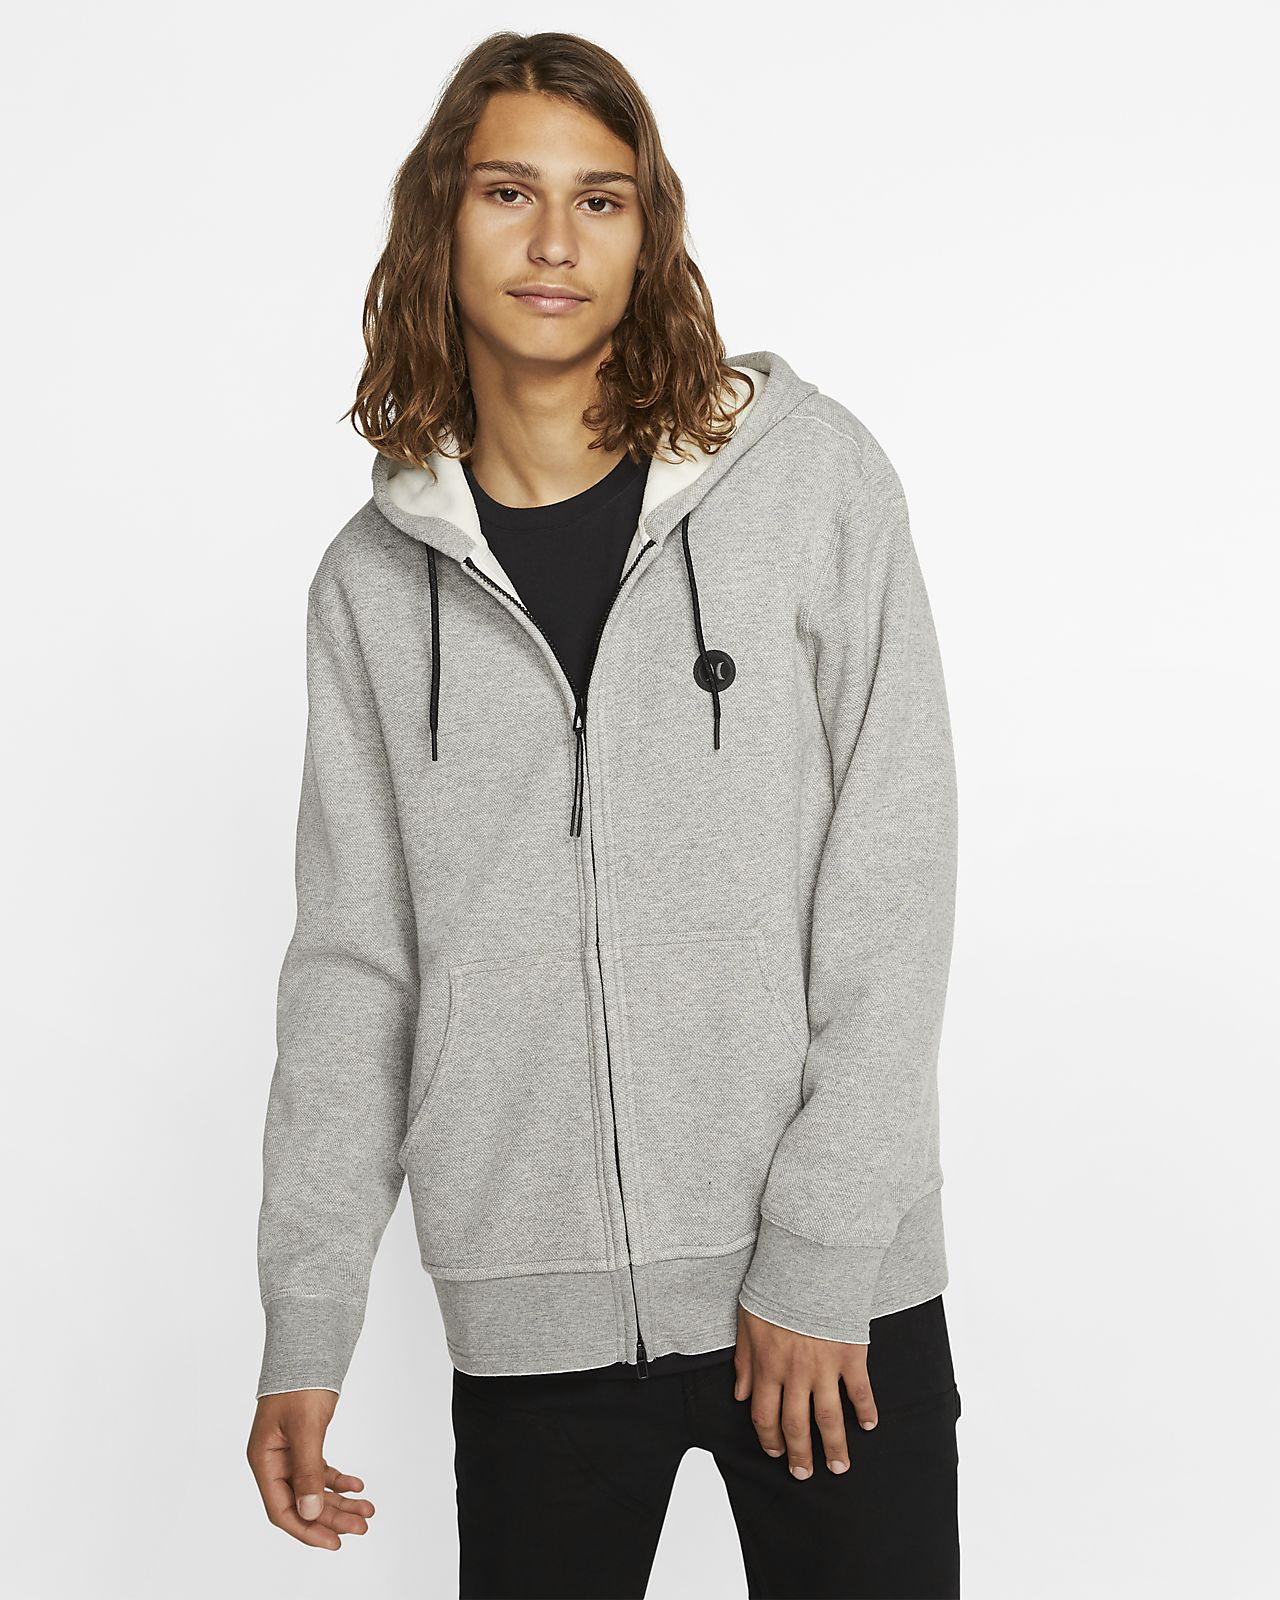 Hurley Therma Endure Men's Full-Zip Fleece Hoodie